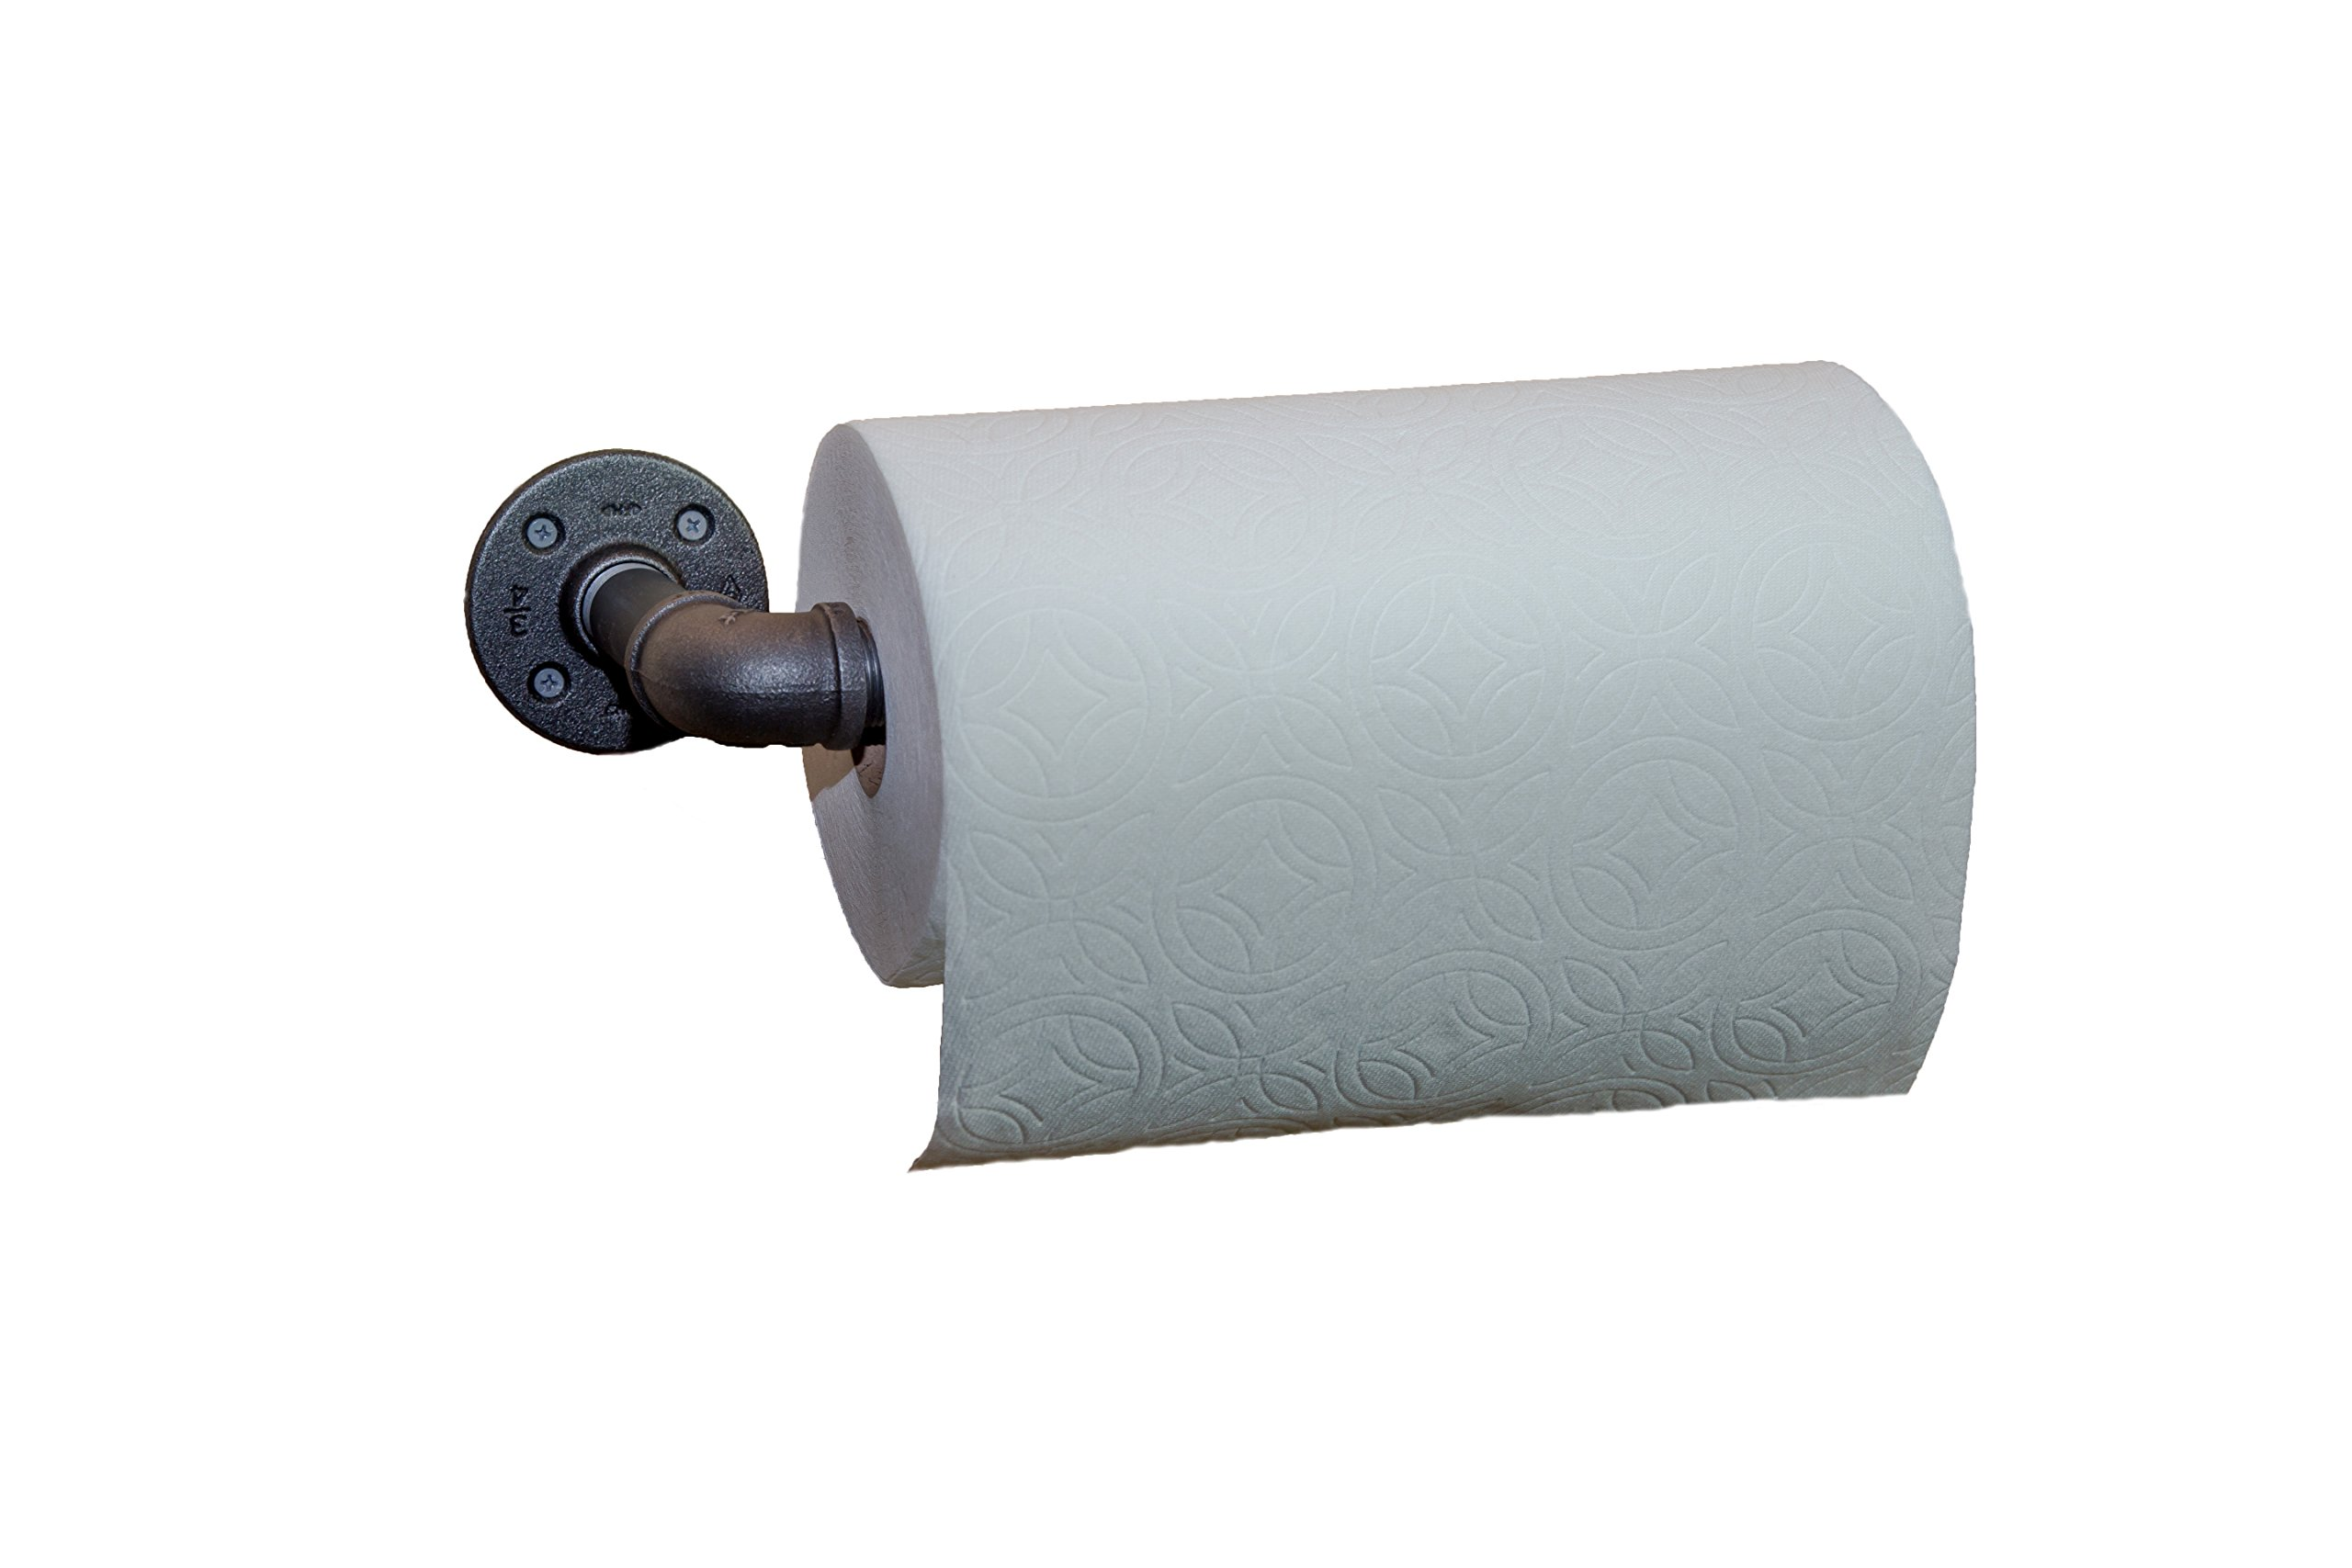 SOLO MTN Industrial Pipe Paper Towel Holder Wall Mount (graphite)